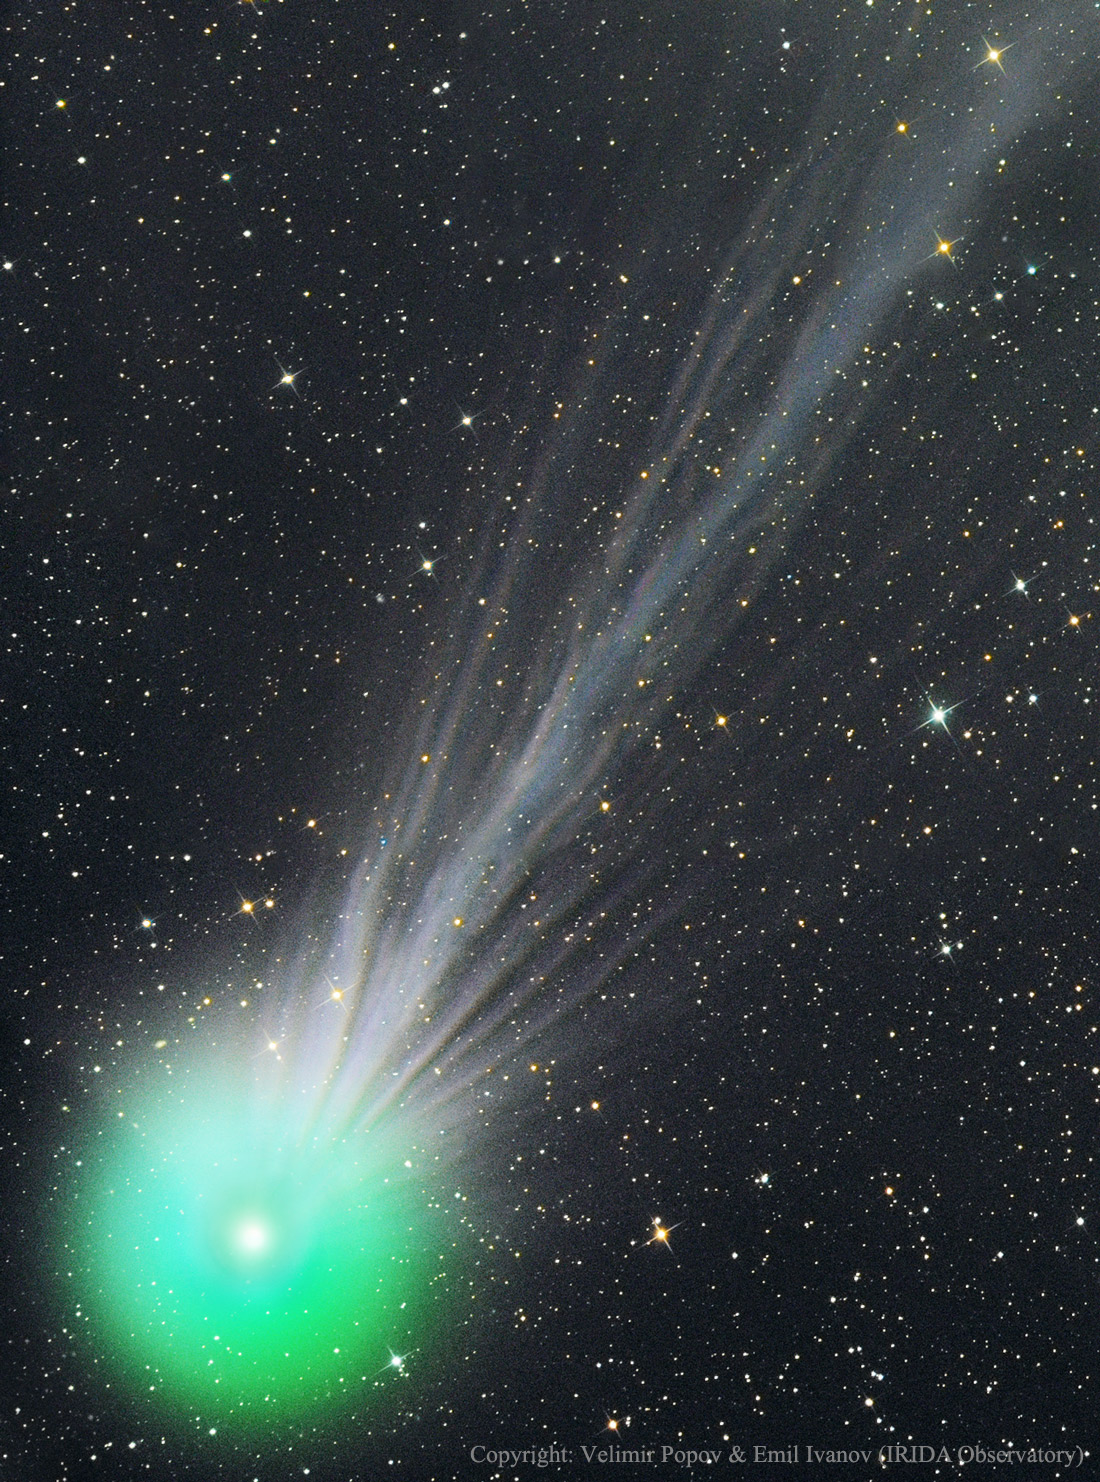 Across The Universe: The Complex Ion Tail of Comet Lovejoy